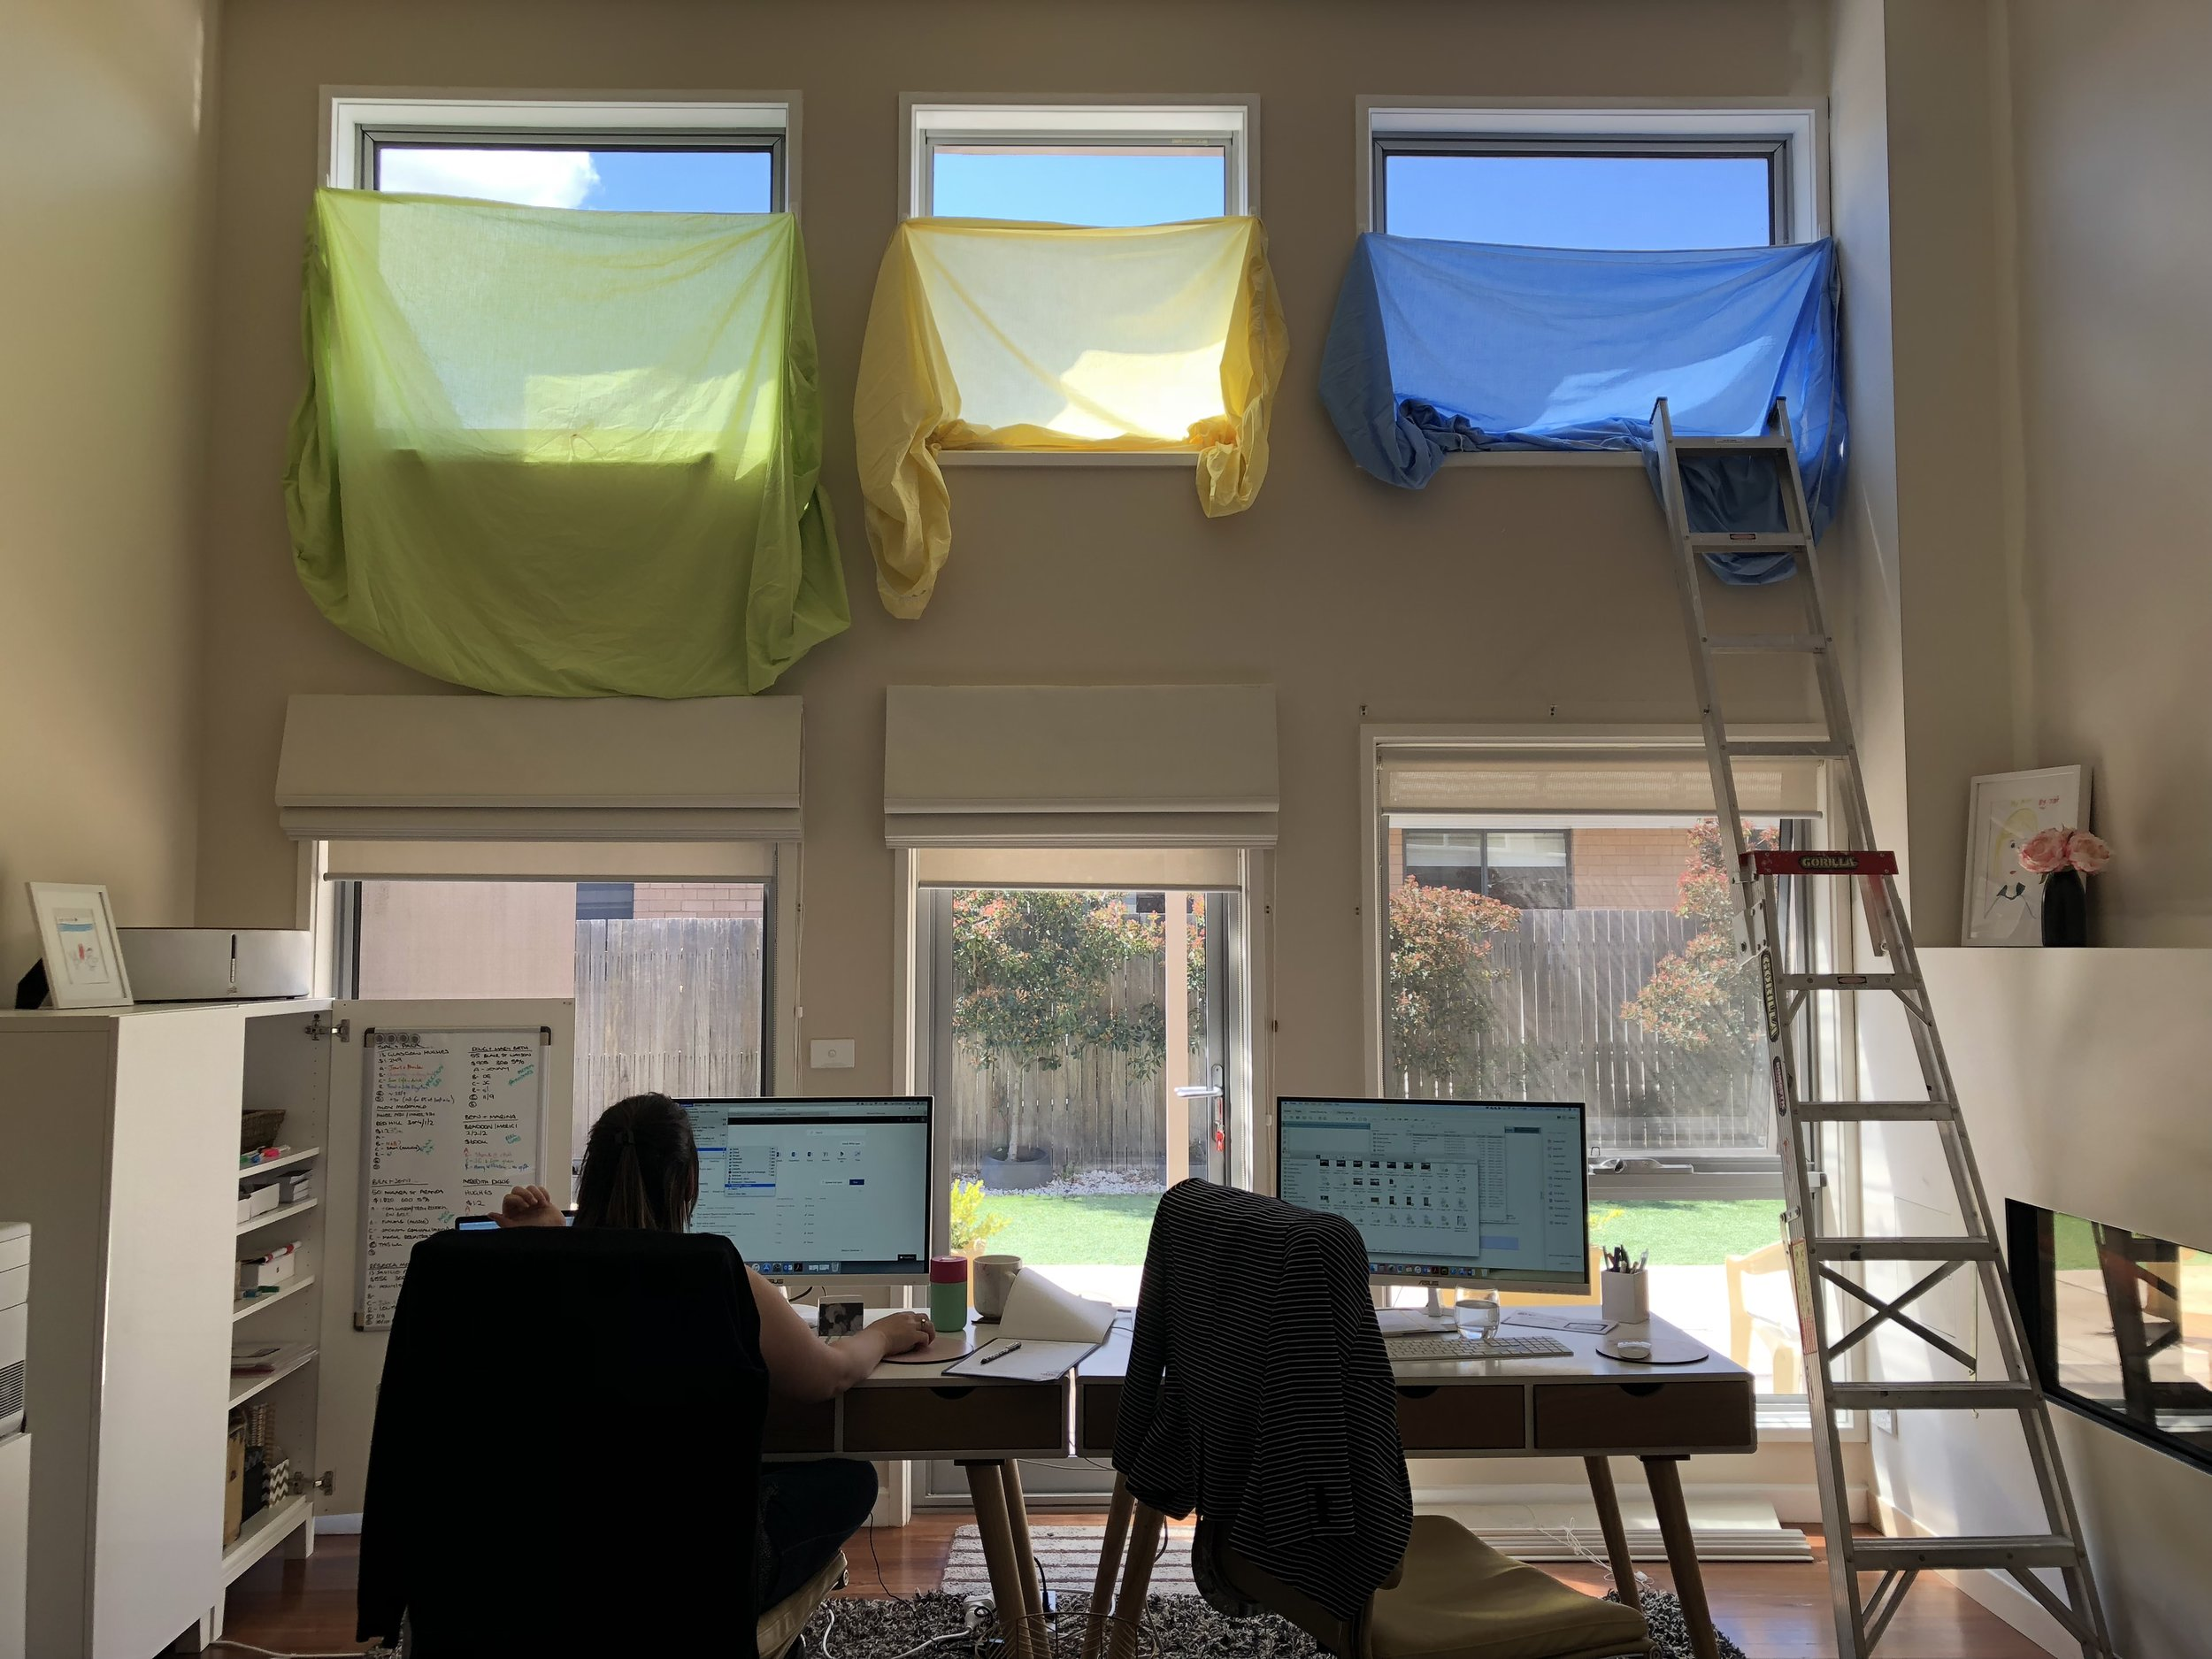 Where the daily grind happens. And yes, I couldn't quite reach the top of the windows for the sheets! Luckily it wasn't too long before the new blinds arrived so we could work in comfort.